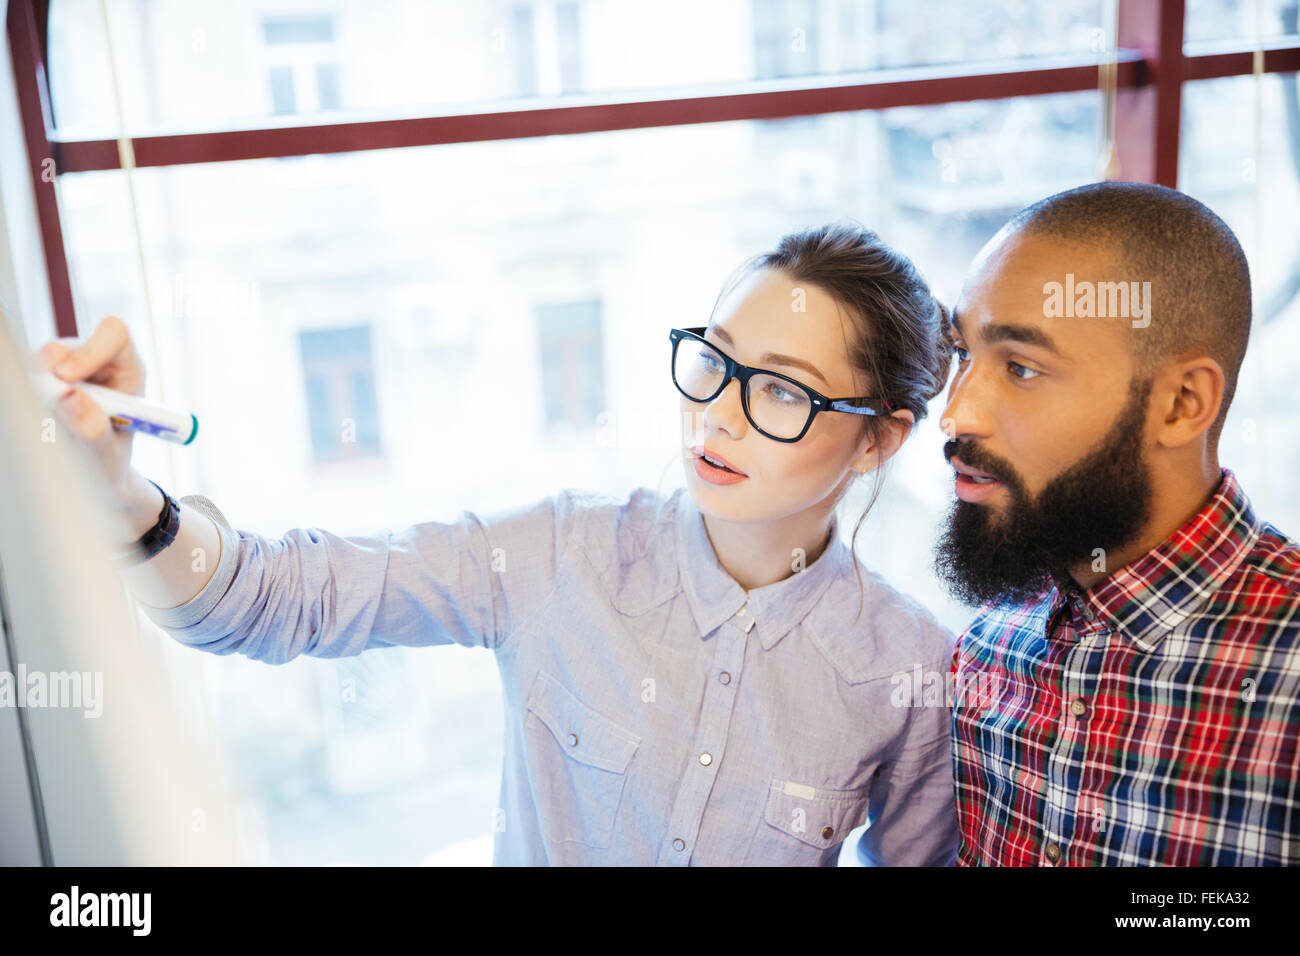 Young business people working with whiteboard in office Stock Photo